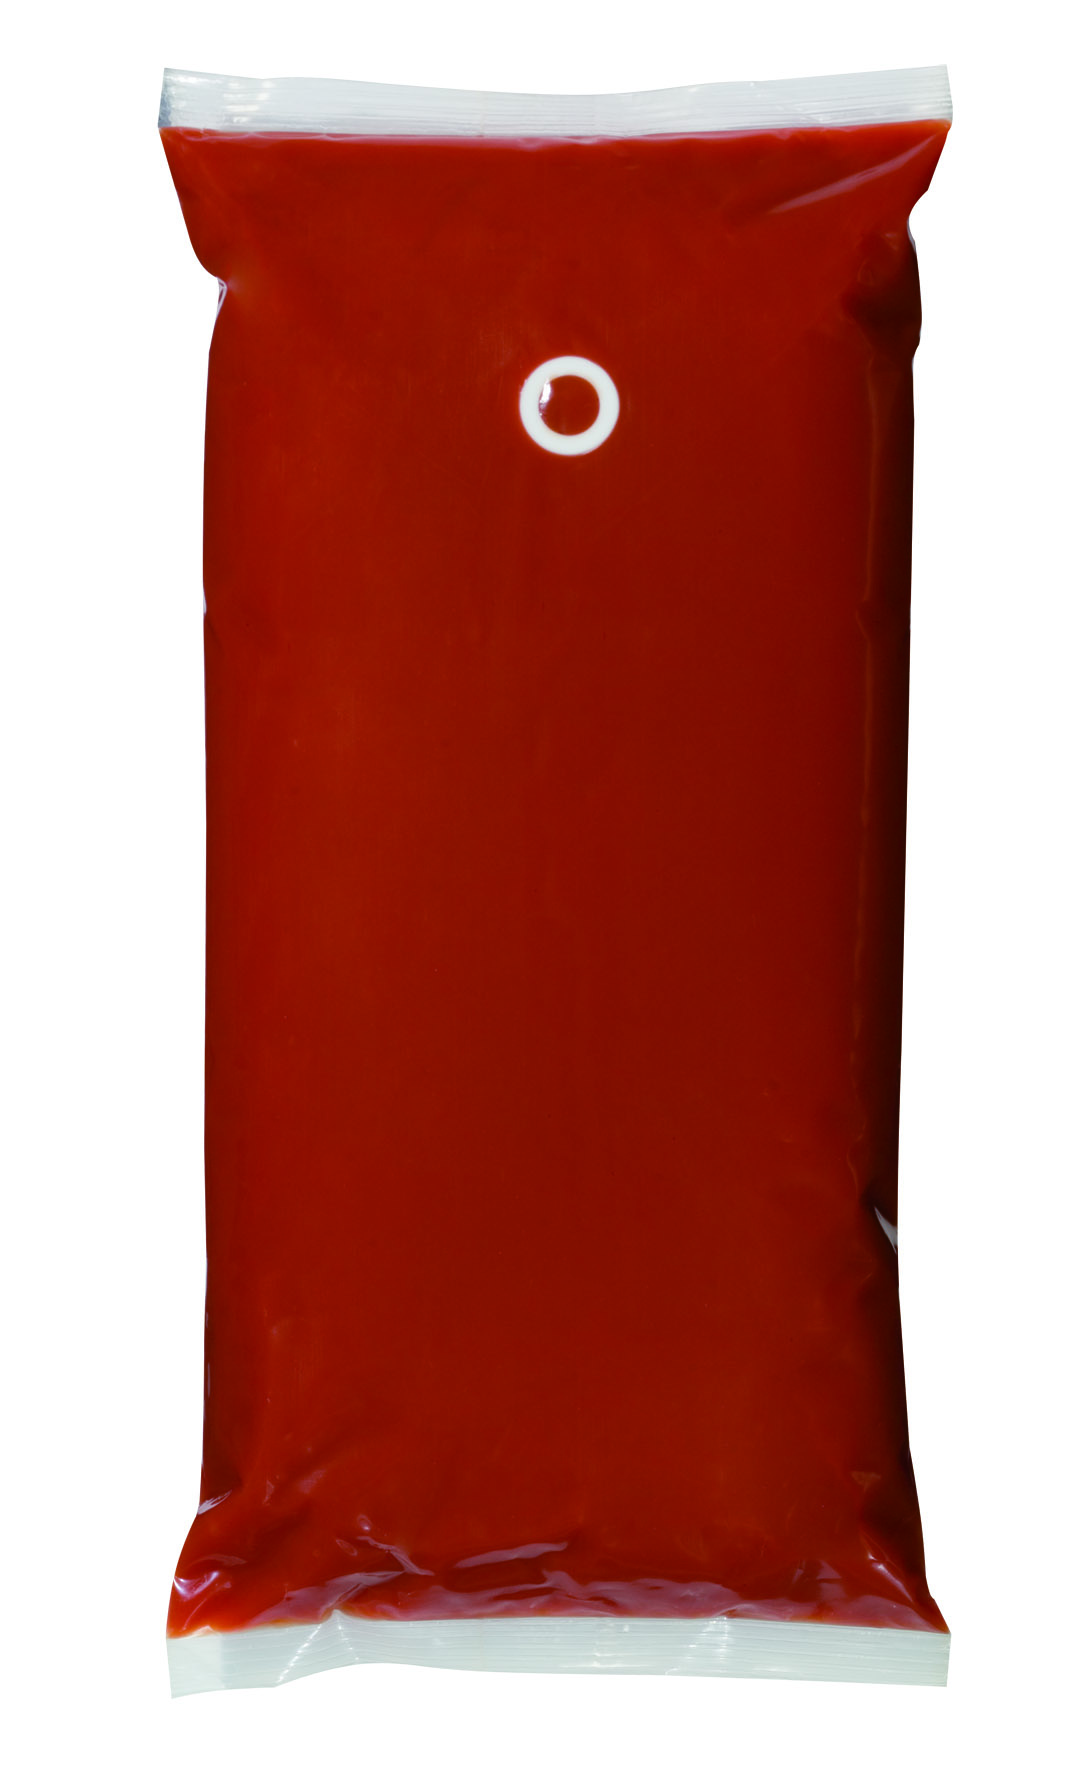 Heinz Tomato Ketchup 2.5L Dispenser pouch